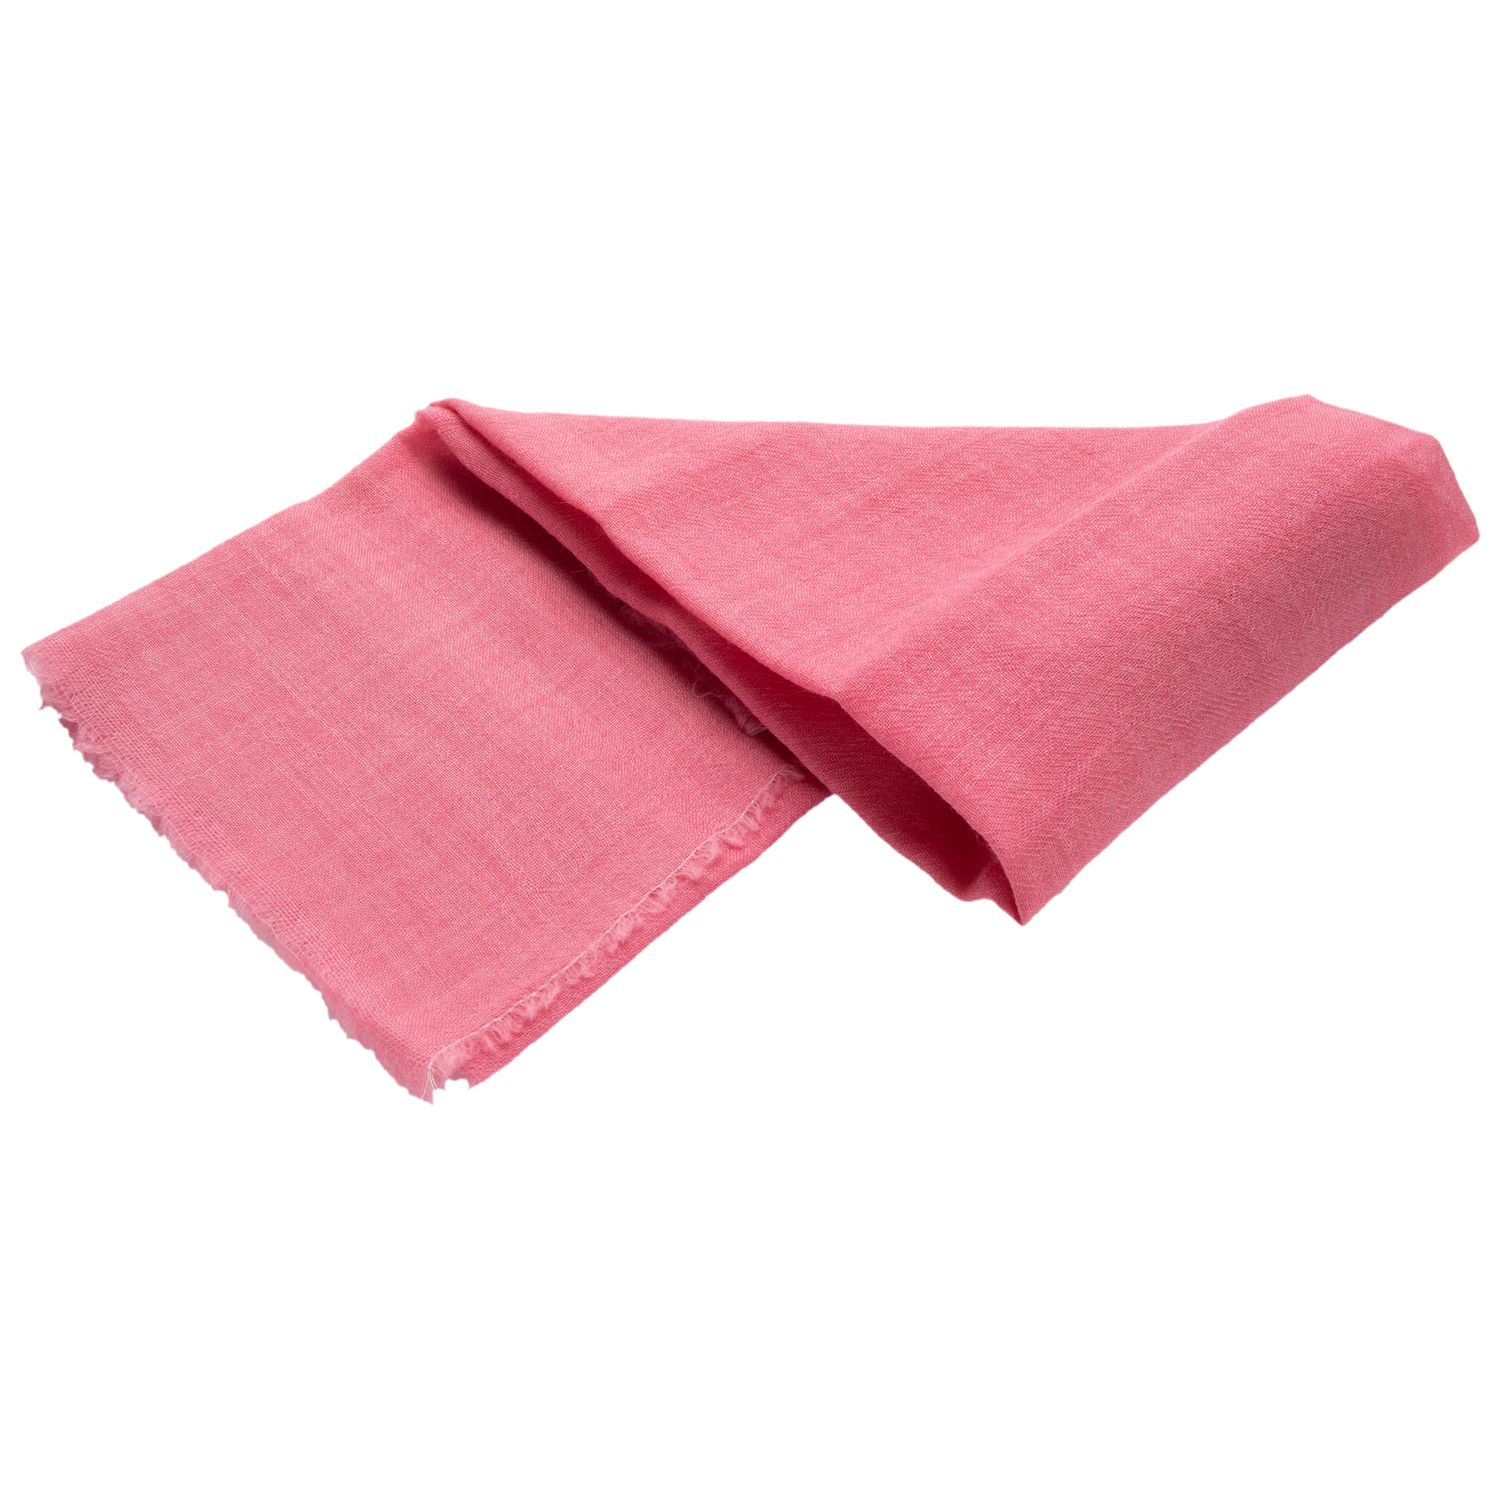 Filges Plant-dyed Woollen Play Cloth